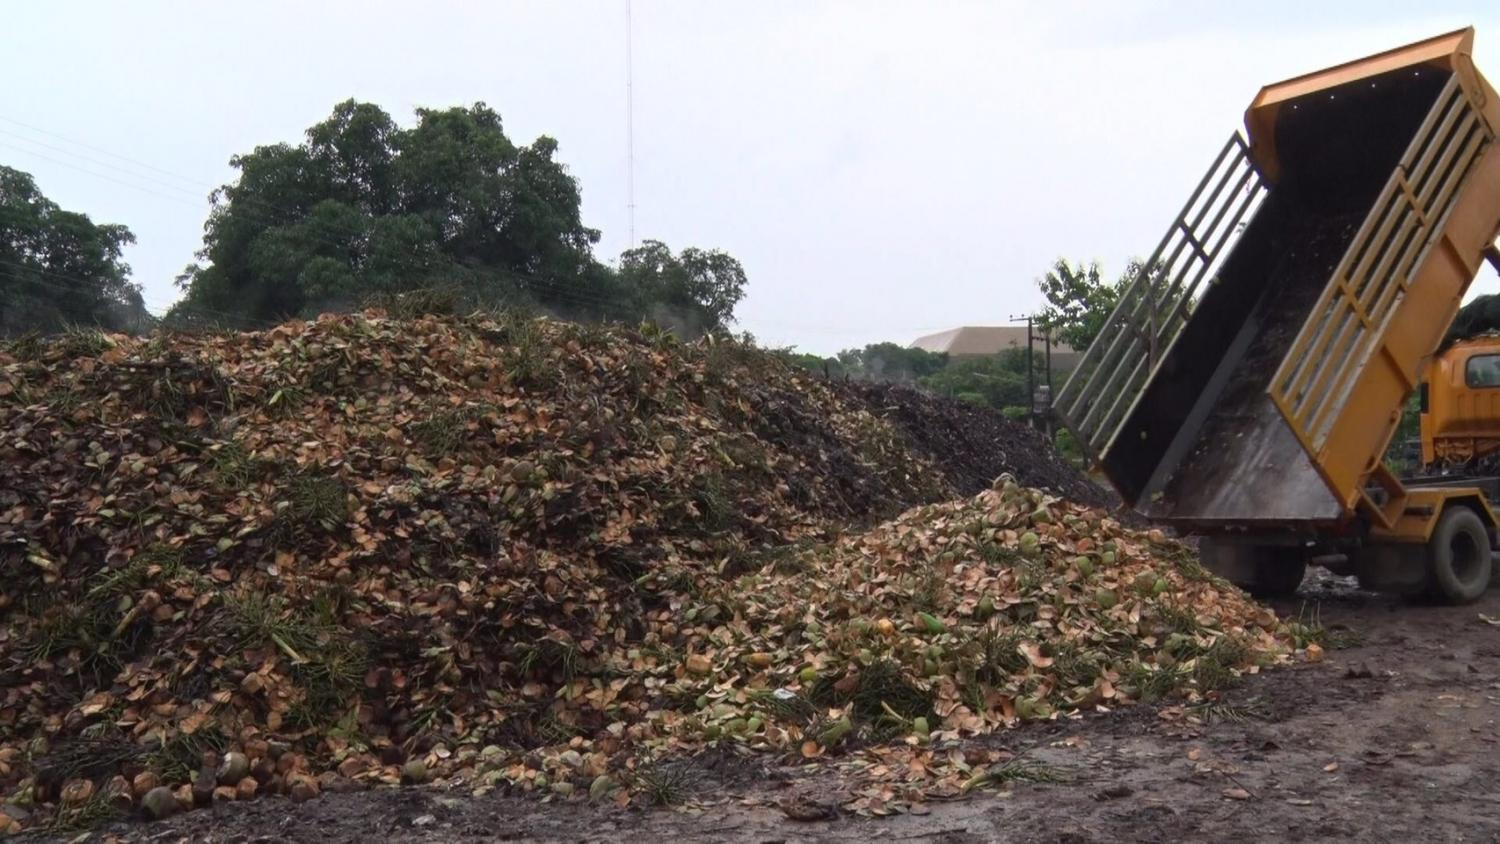 The Chiang Mai municipality collects coconut shells to produce organic fertiliser.